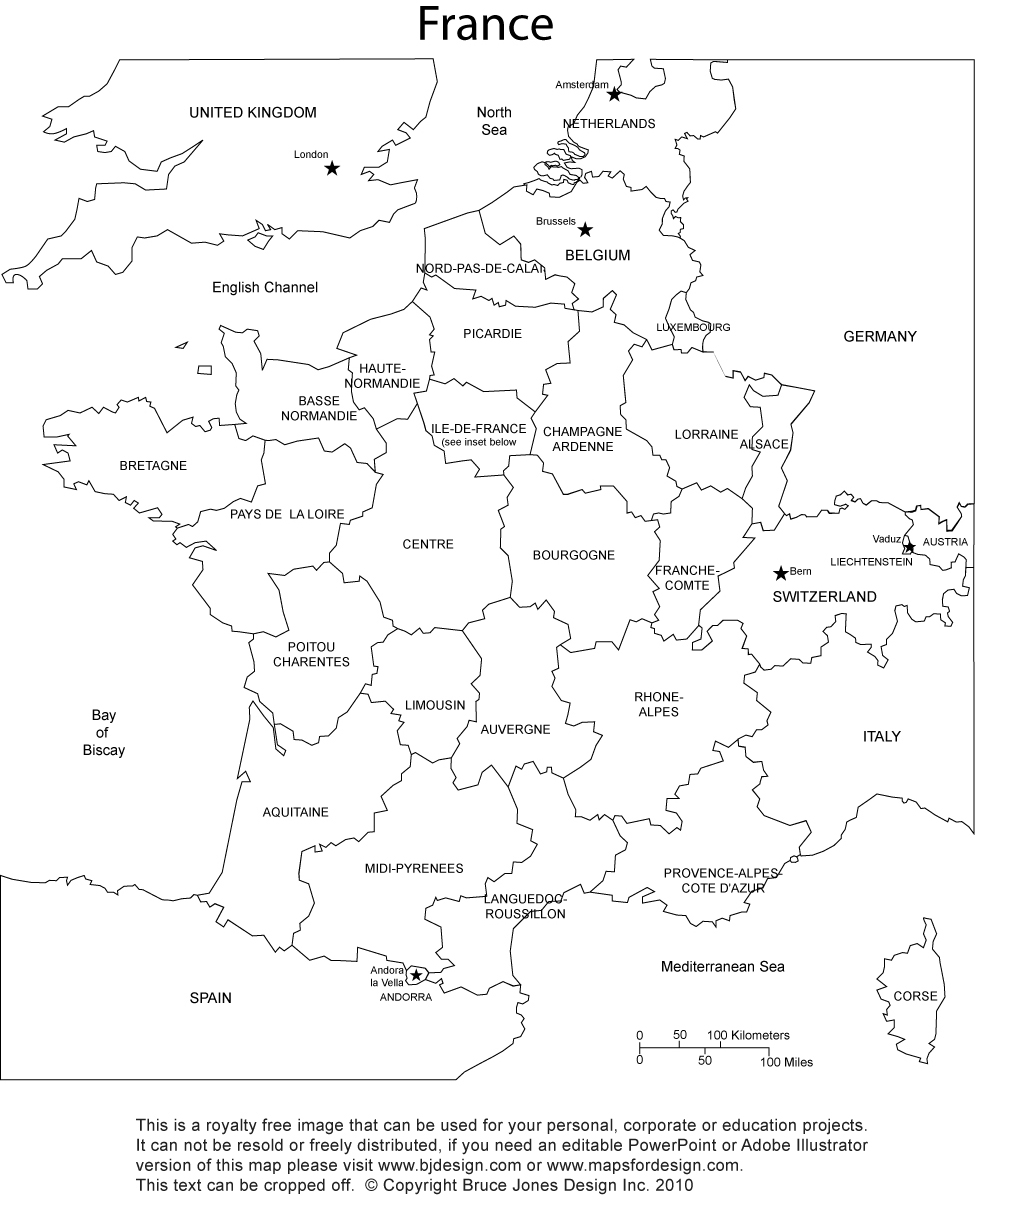 Map Of France To Print.France Map Printable Blank Royalty Free Jpg